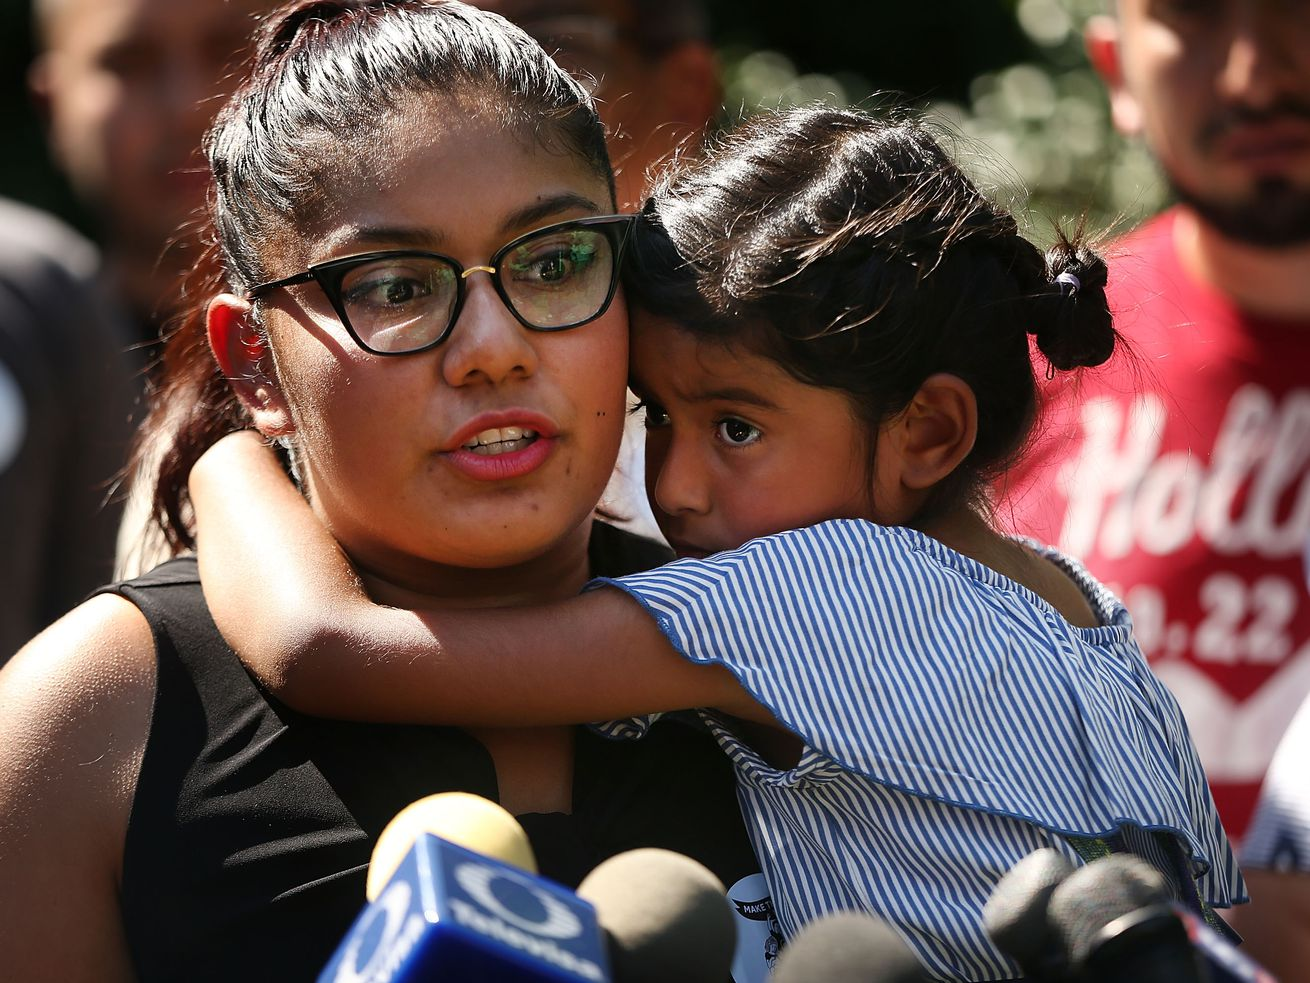 Perla Silva holds her daughter Aileen at a news conference for her parents Concepcion and Margarito Silva, who were detained by Immigration and Customs Enforcement on the Fourth of July in New York City.